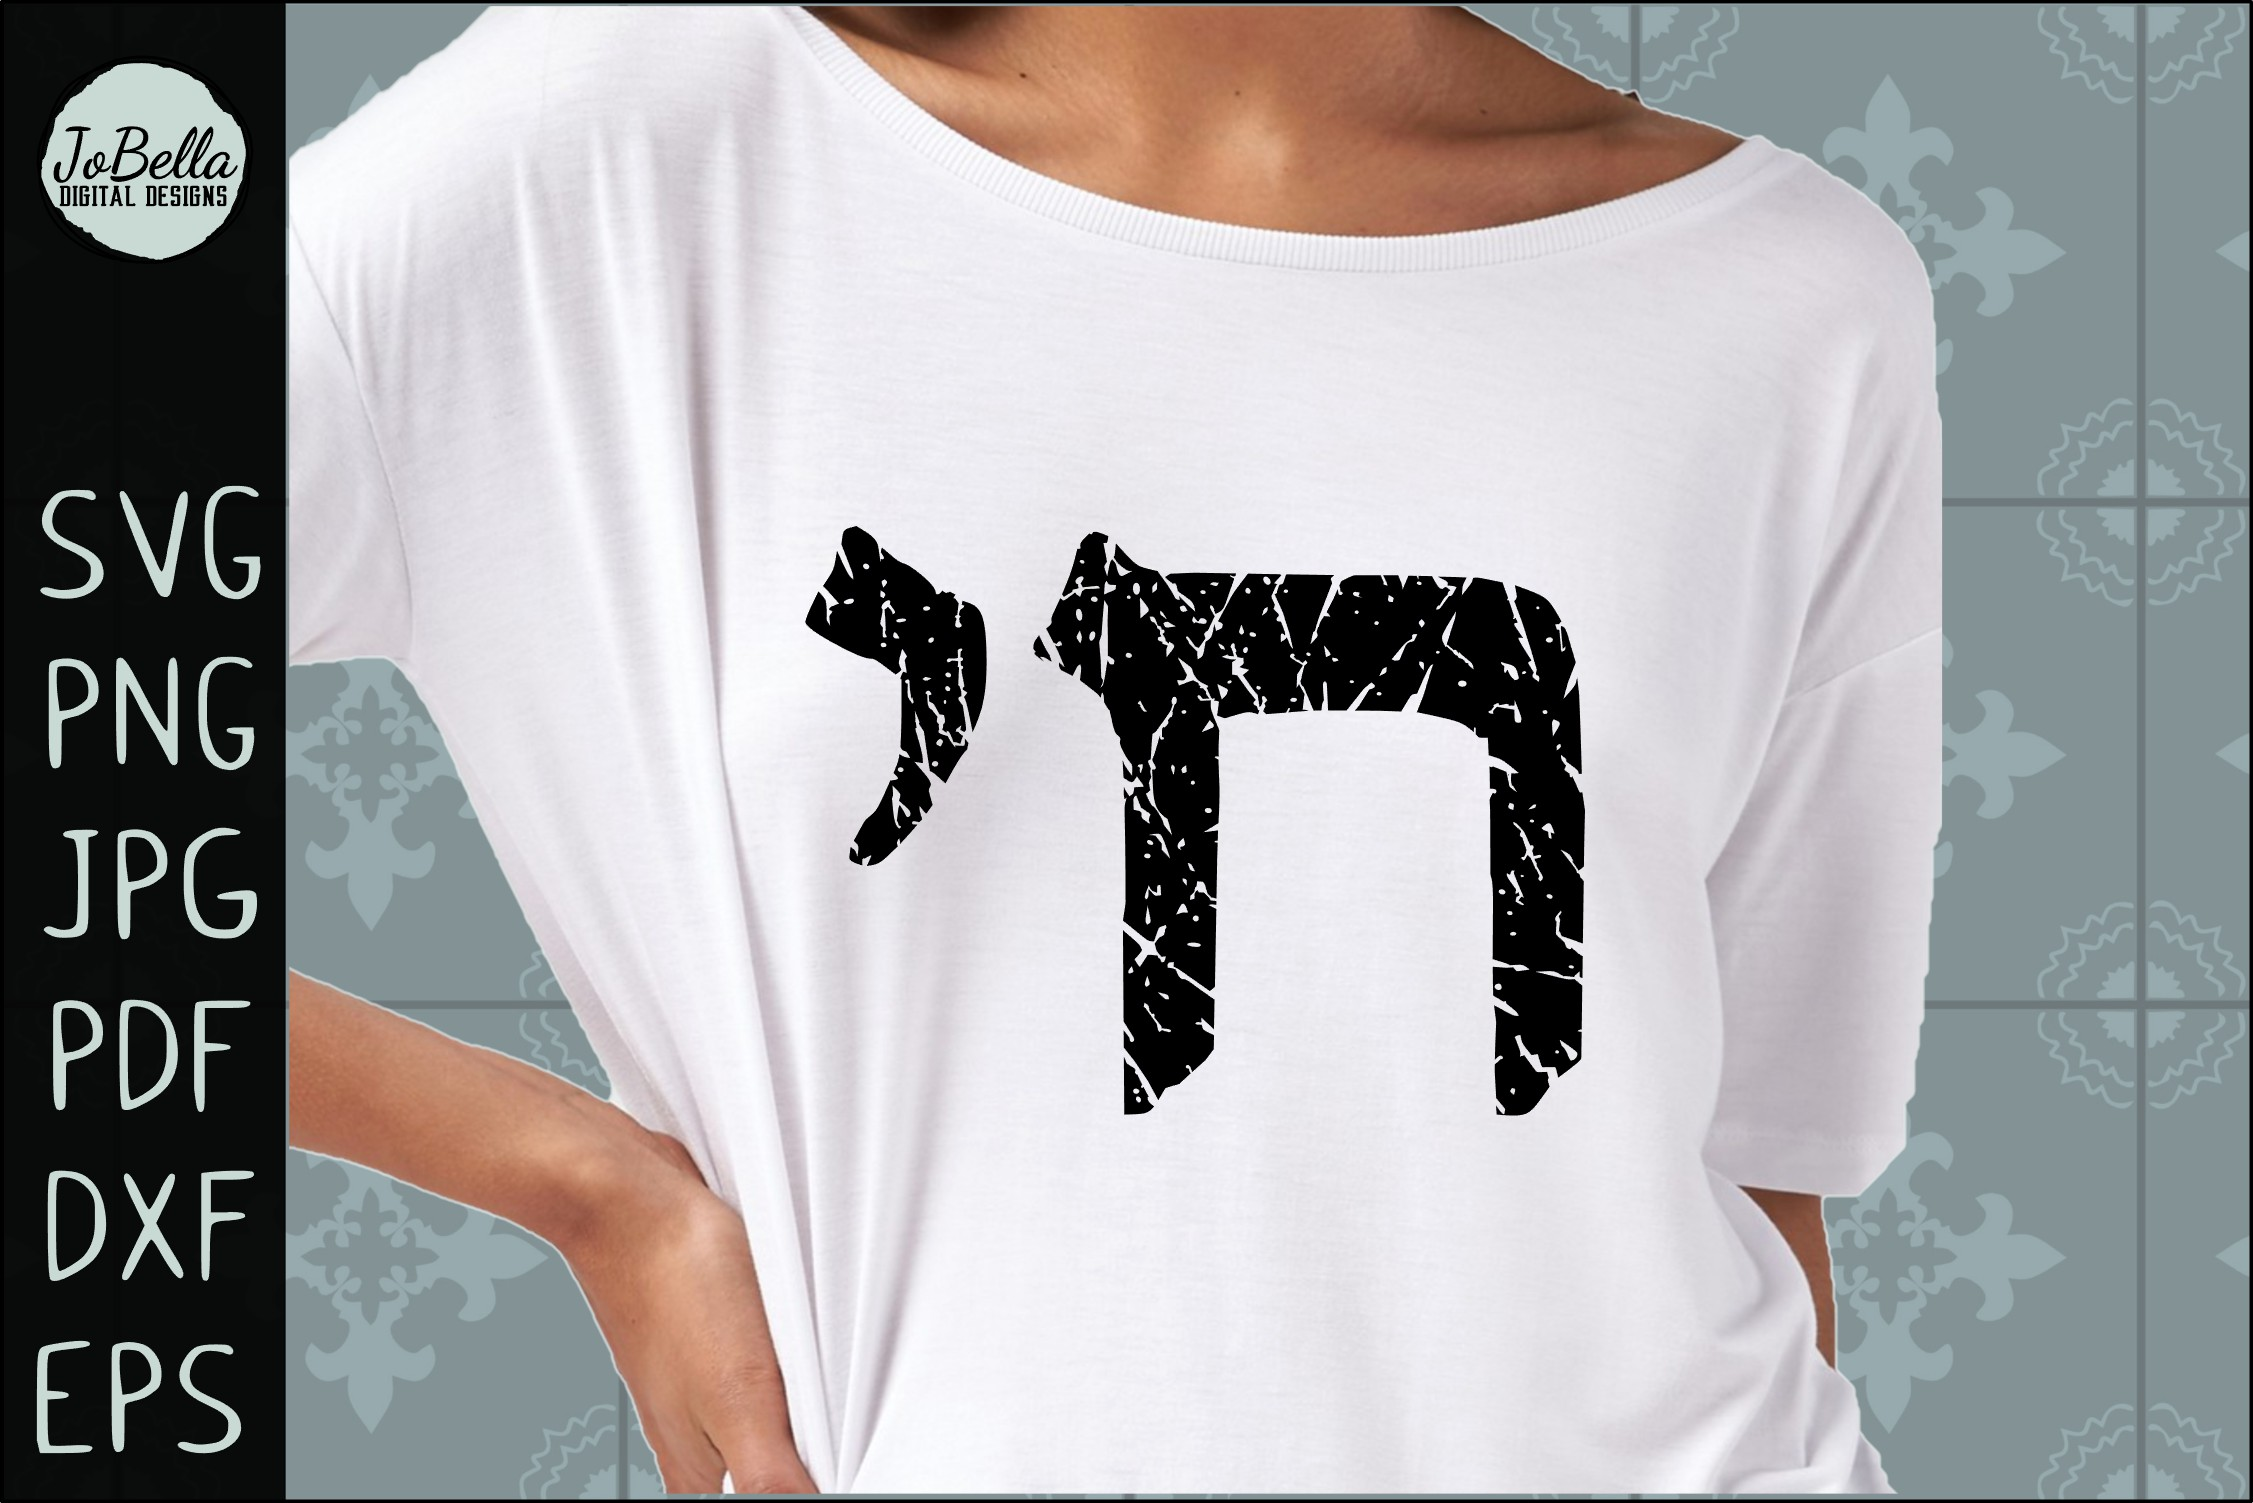 Jewish SVG Bundle, Sublimation PNGs and Printables example image 14